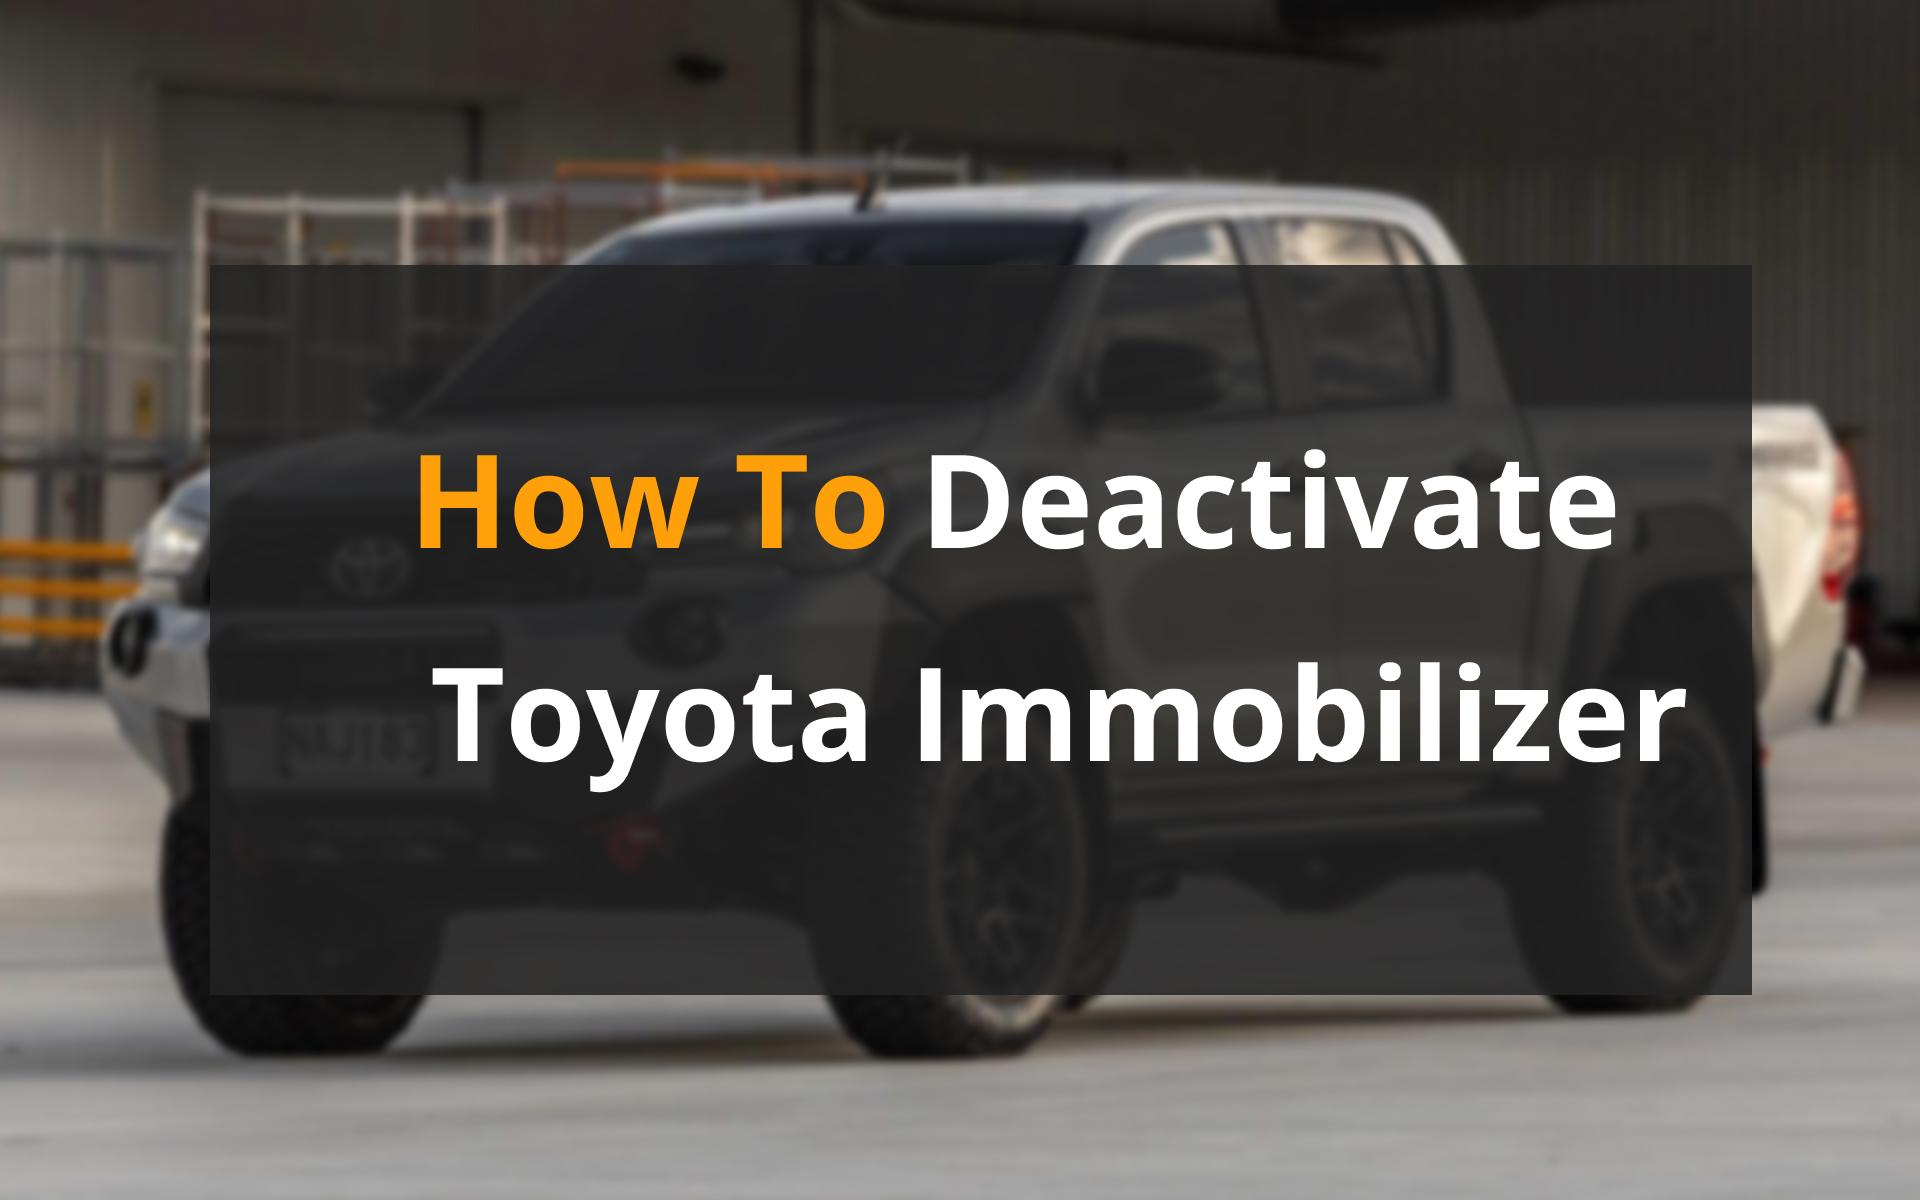 How to Deactivate Toyota Immobilizer: image